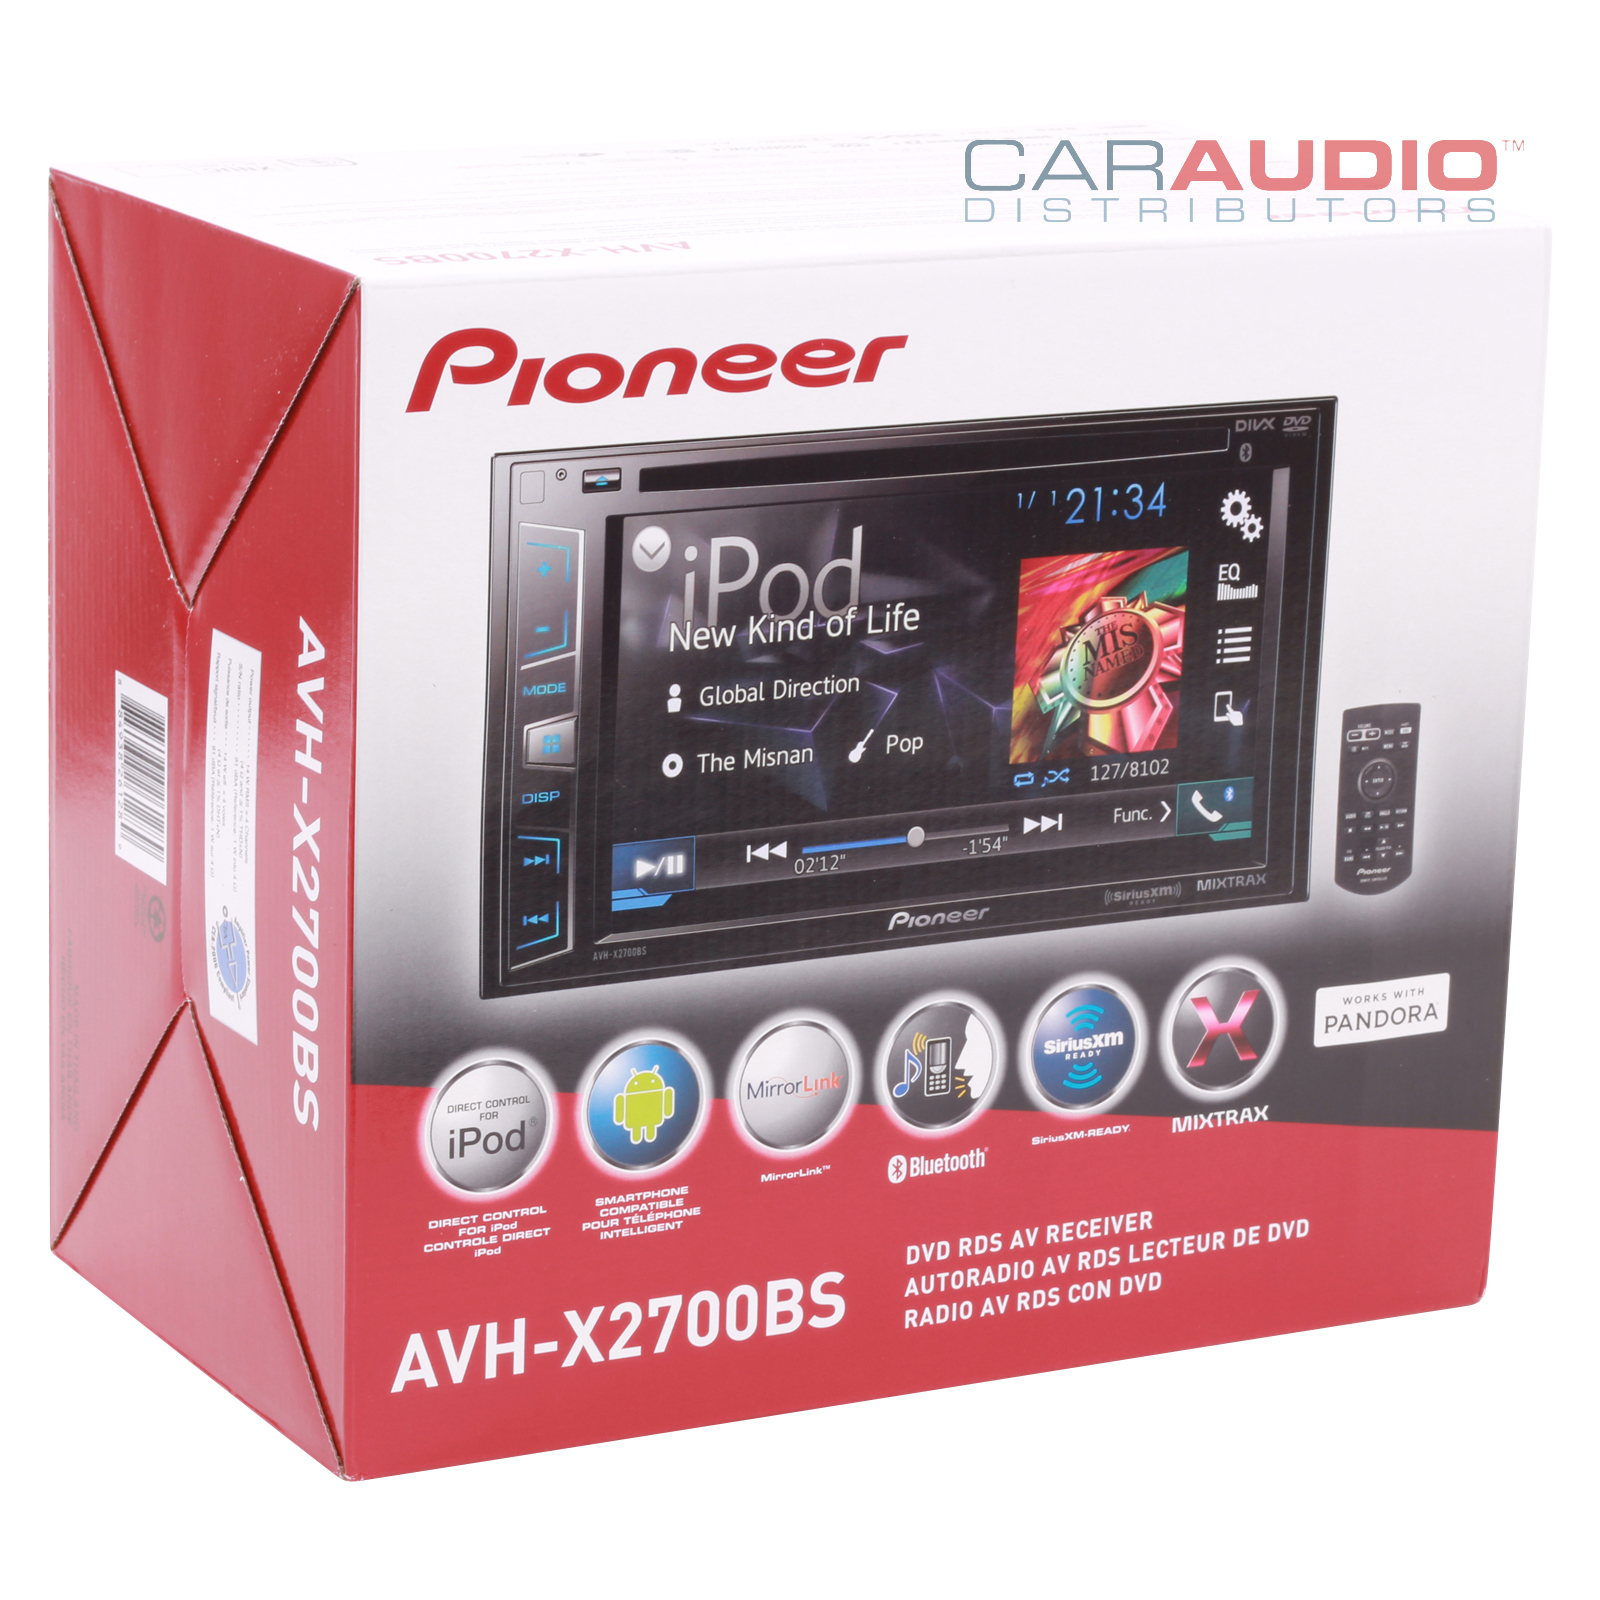 new pioneer avh x2700bs double din 6 2 dvd cd mp3. Black Bedroom Furniture Sets. Home Design Ideas